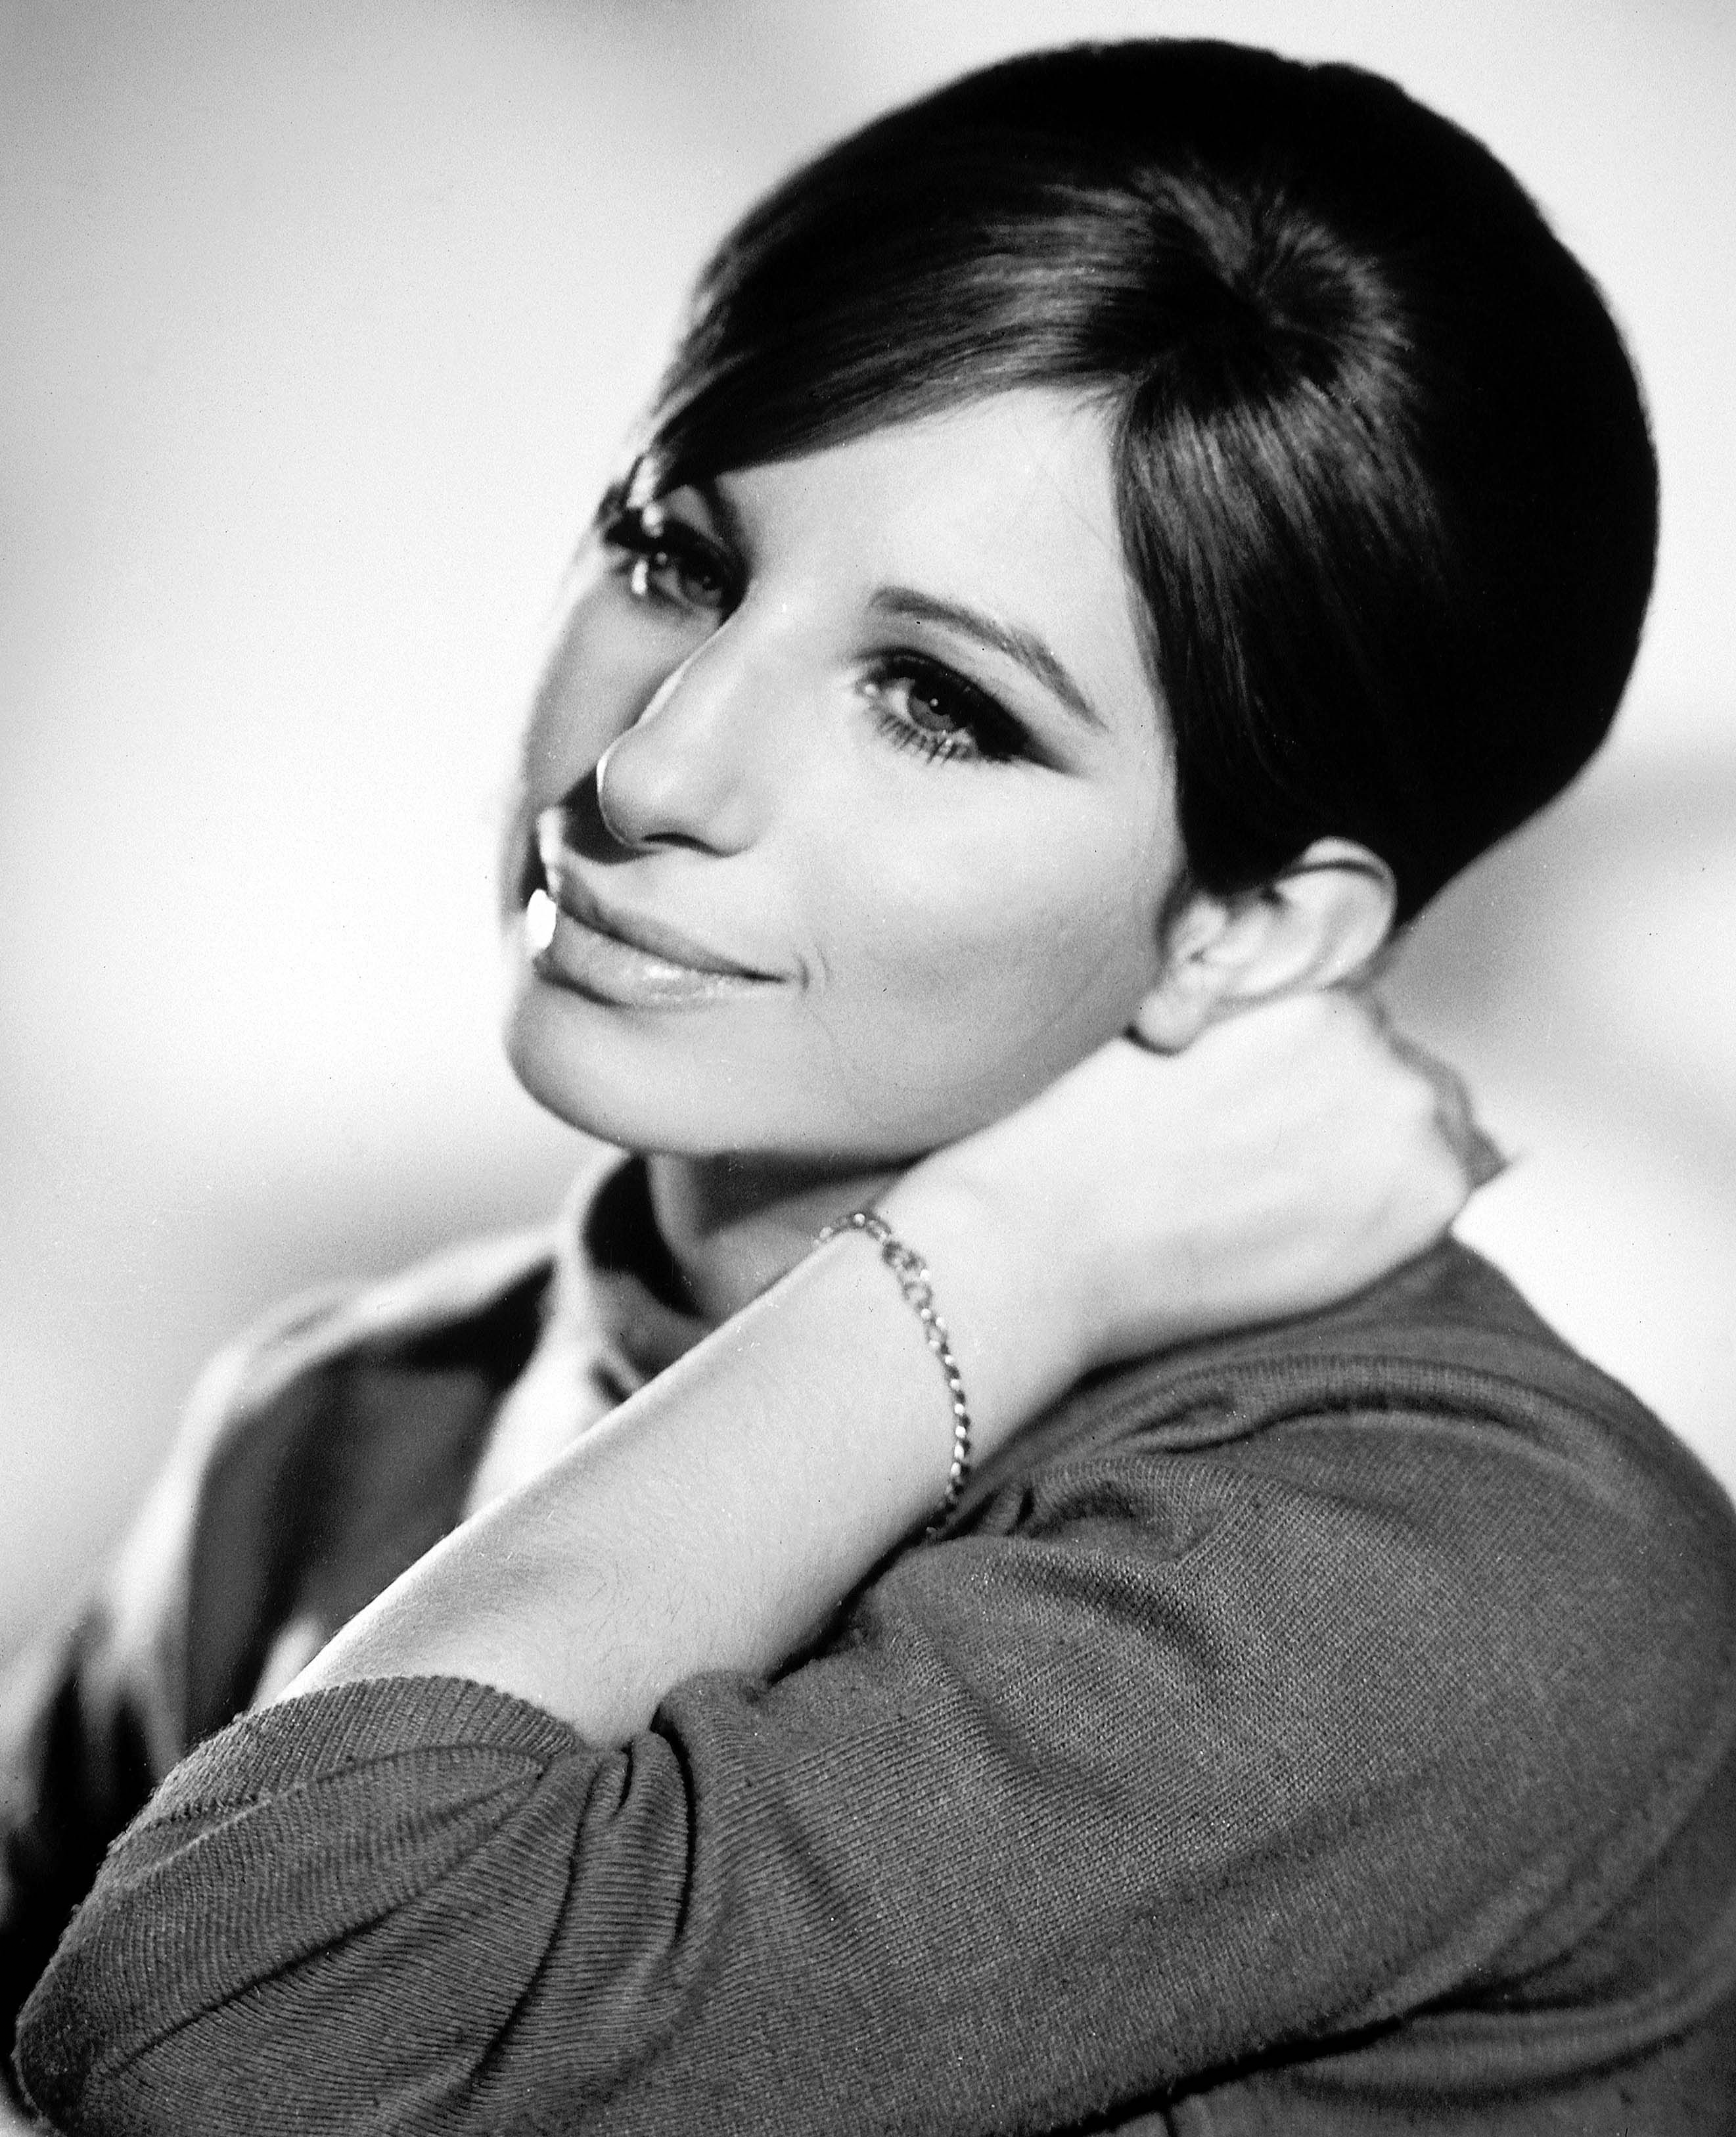 1960s Hair and Makeup Trends That Are Back - Sixties Beauty Trends ...